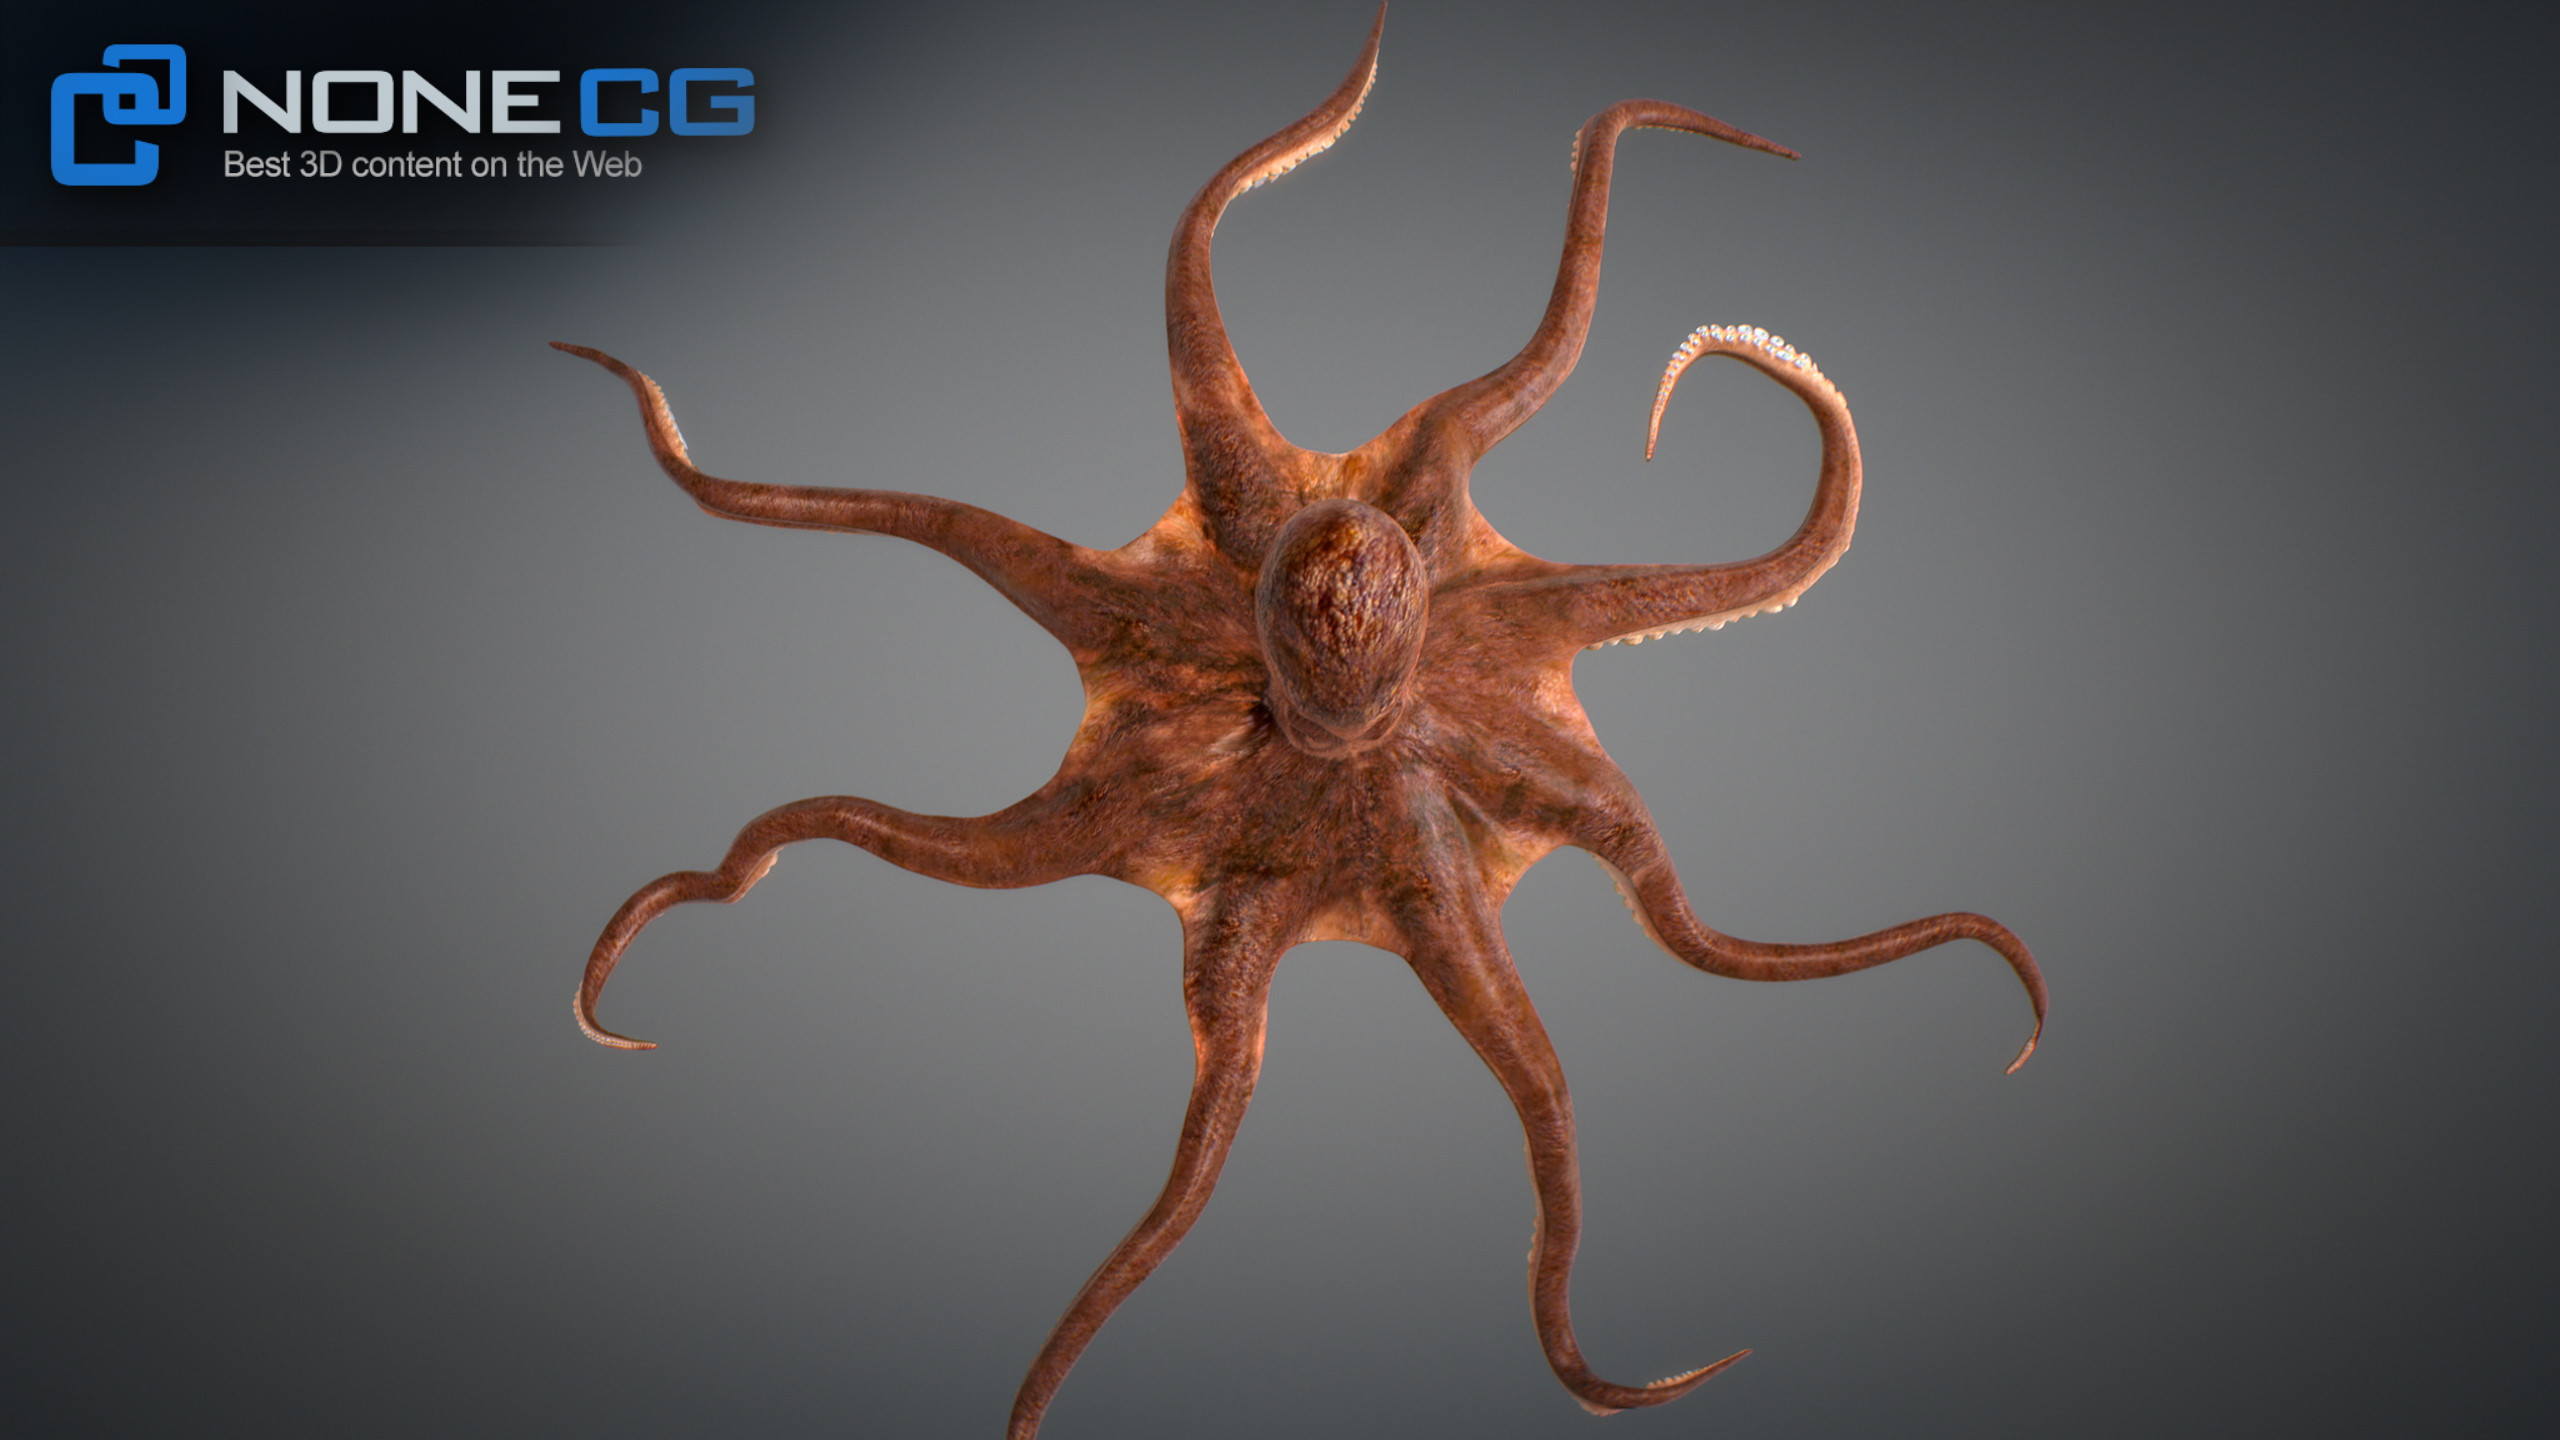 3D Octopus Animated